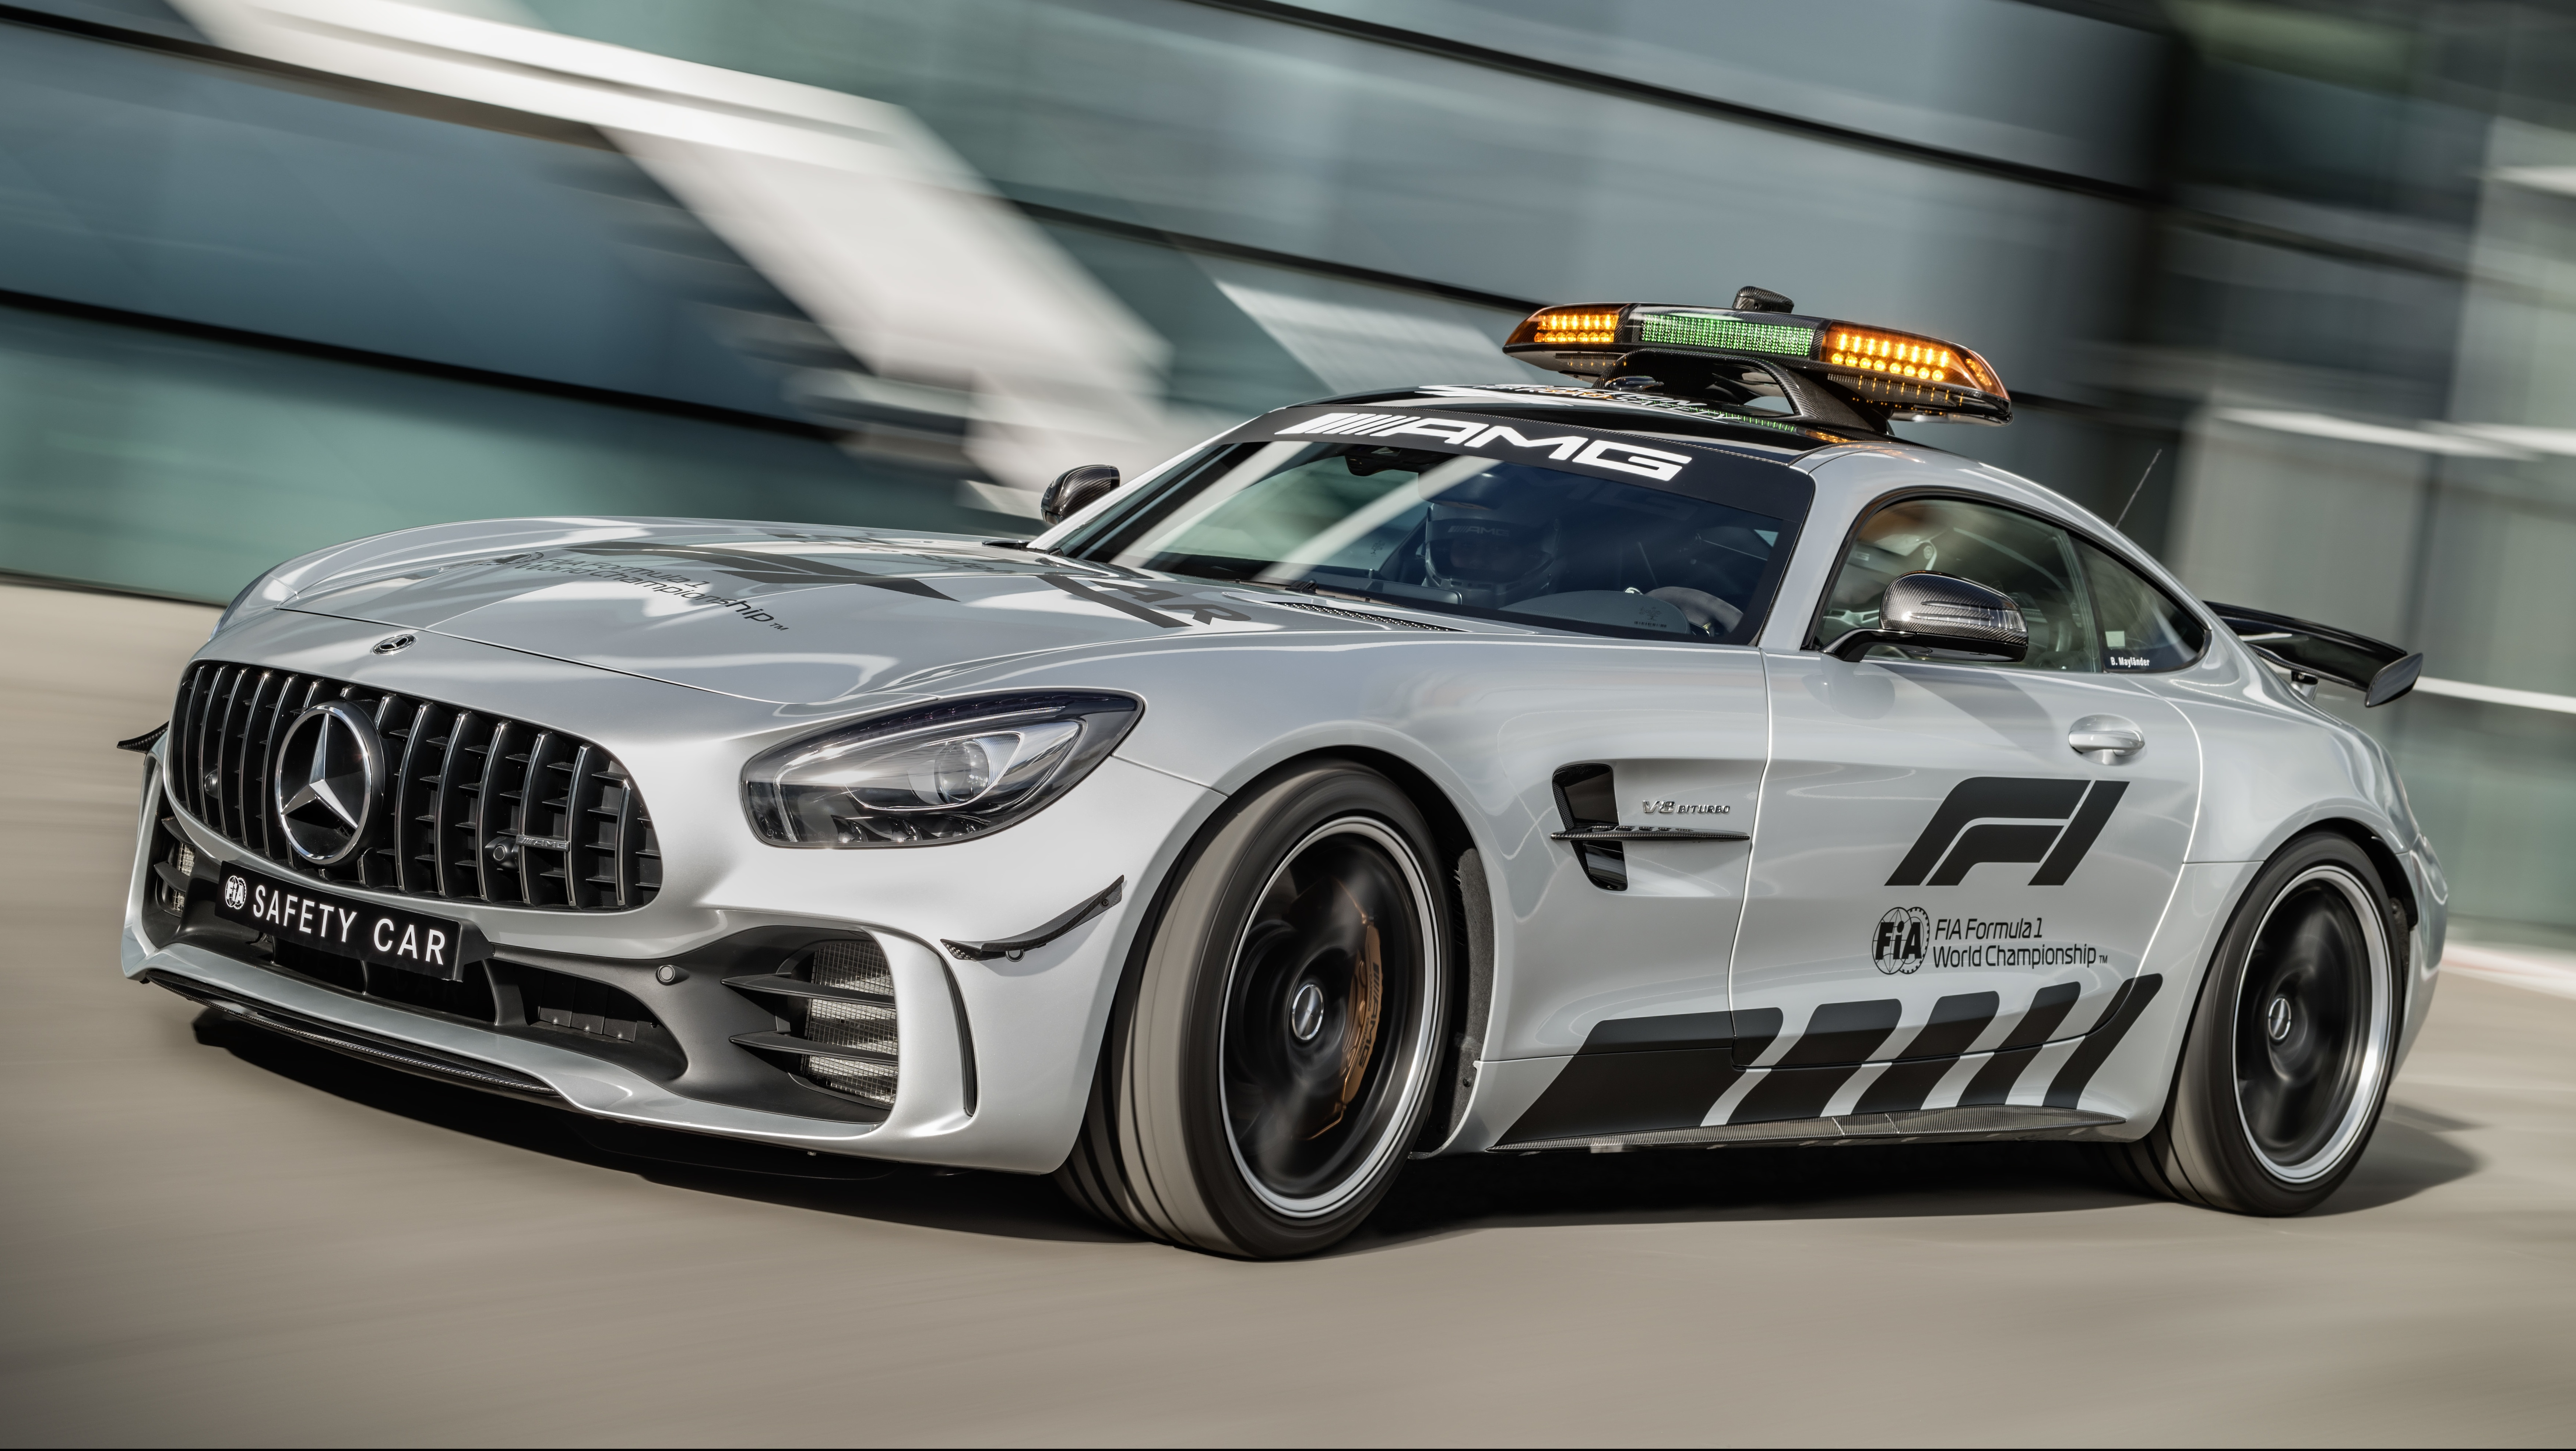 Mercedes amg gt r most powerful f1 safety car paul tan for Mercedes benz f1